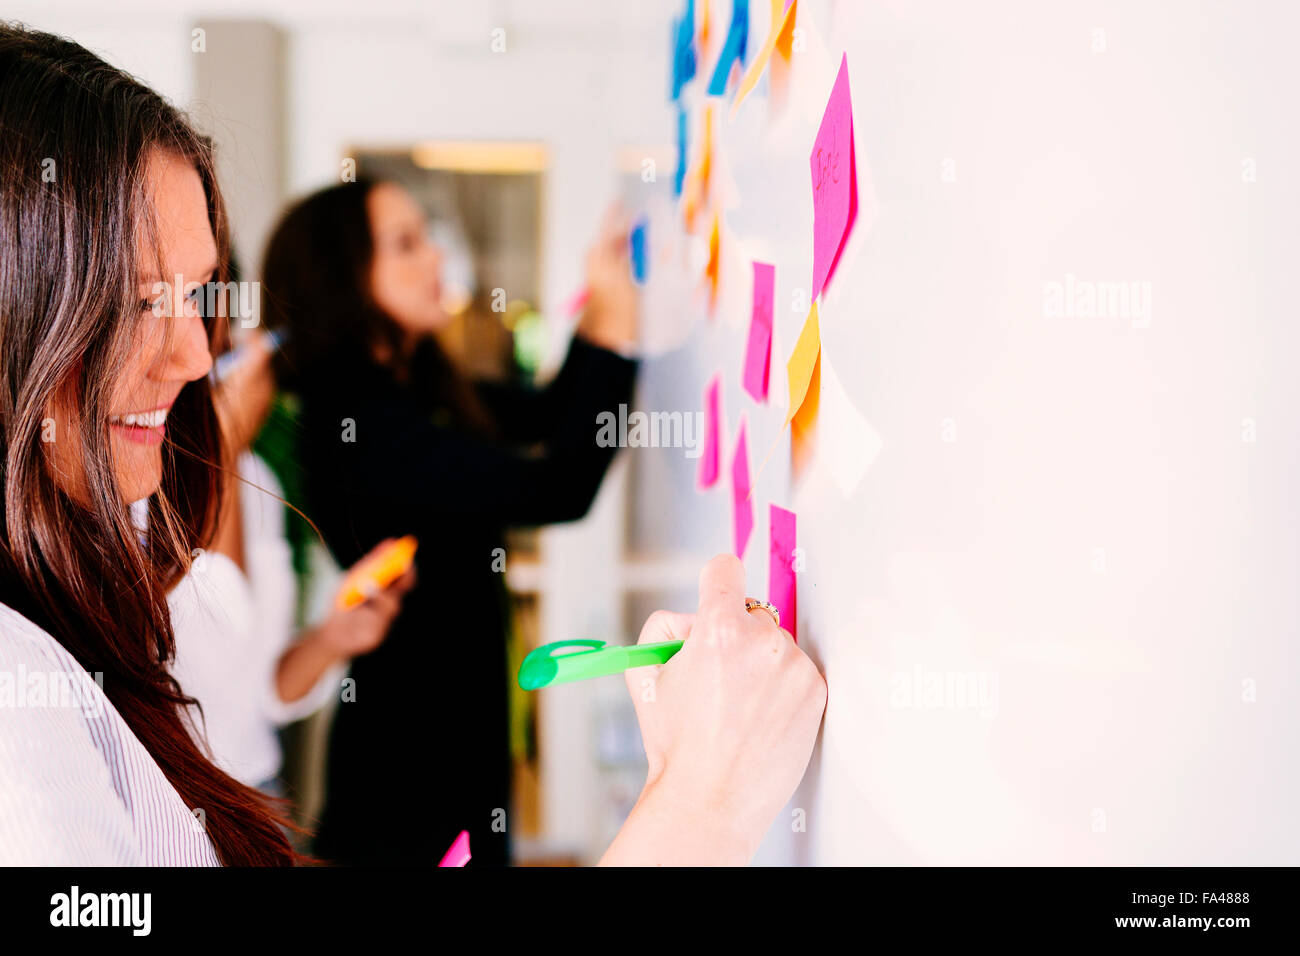 Businesswomen fixing sticky notes at office - Stock Image